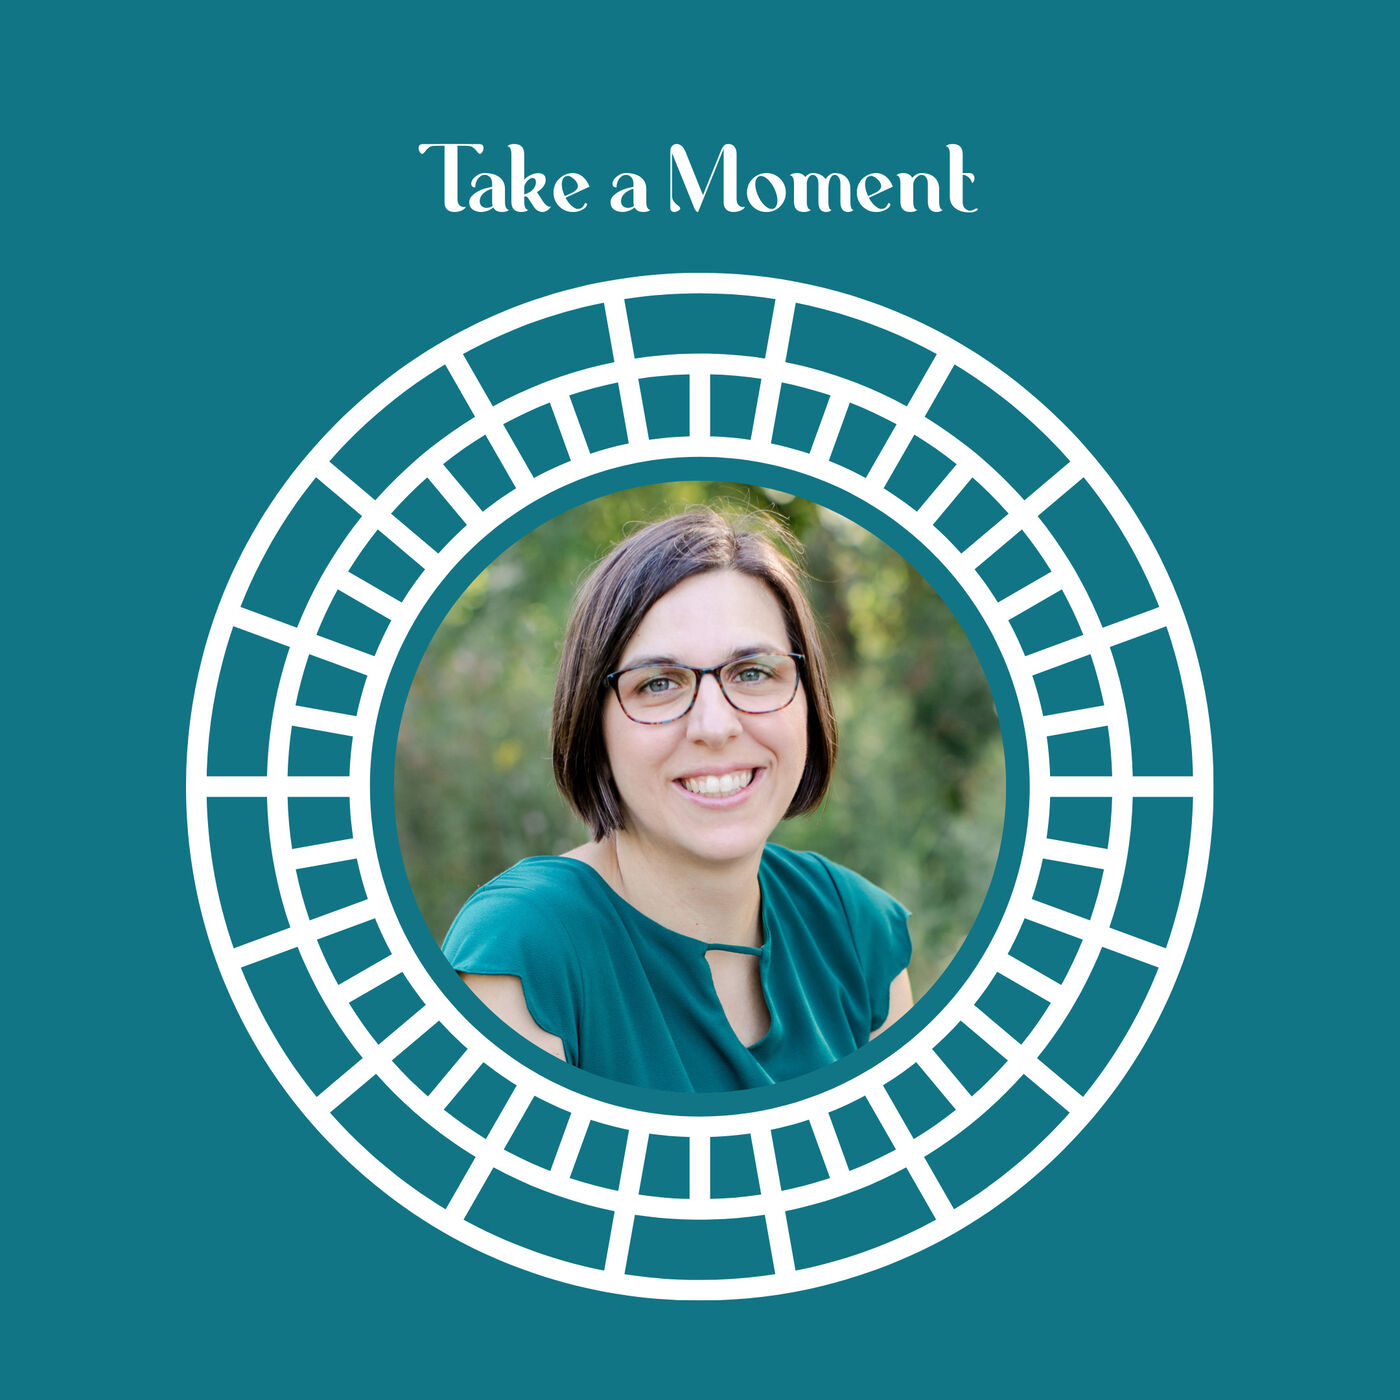 Take A Moment featuring Dr. Sarah Montgomery